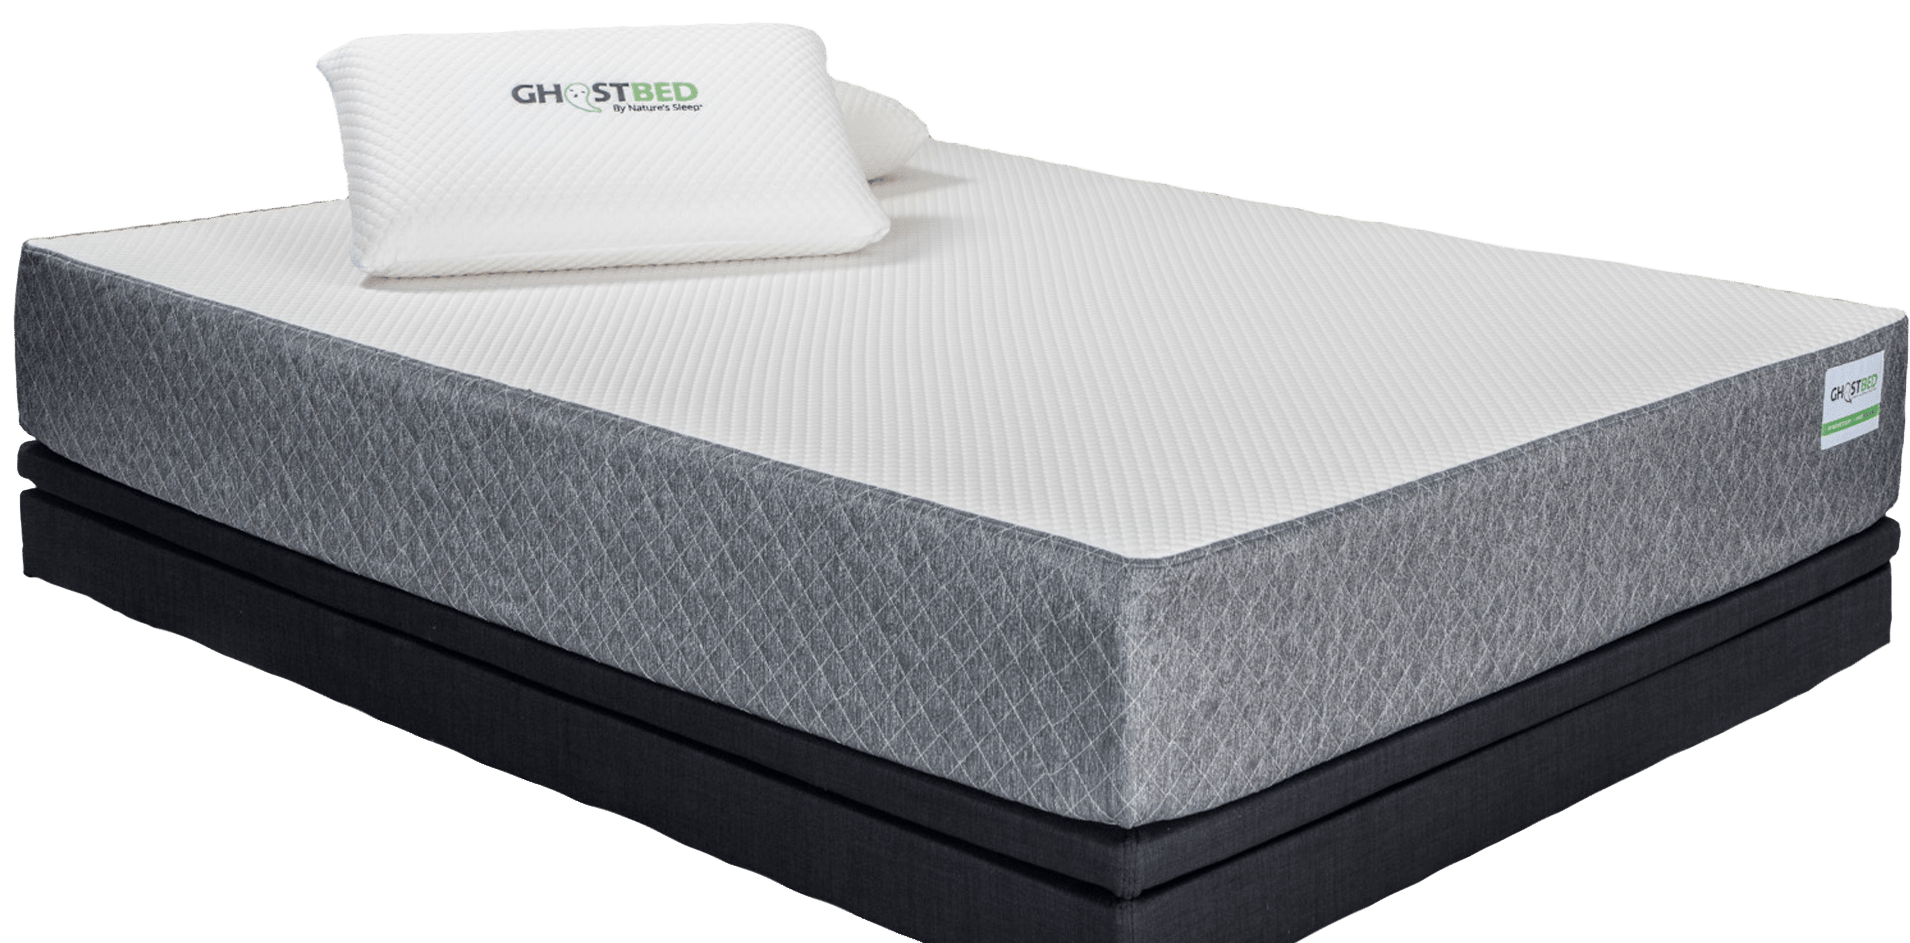 The GhostBed